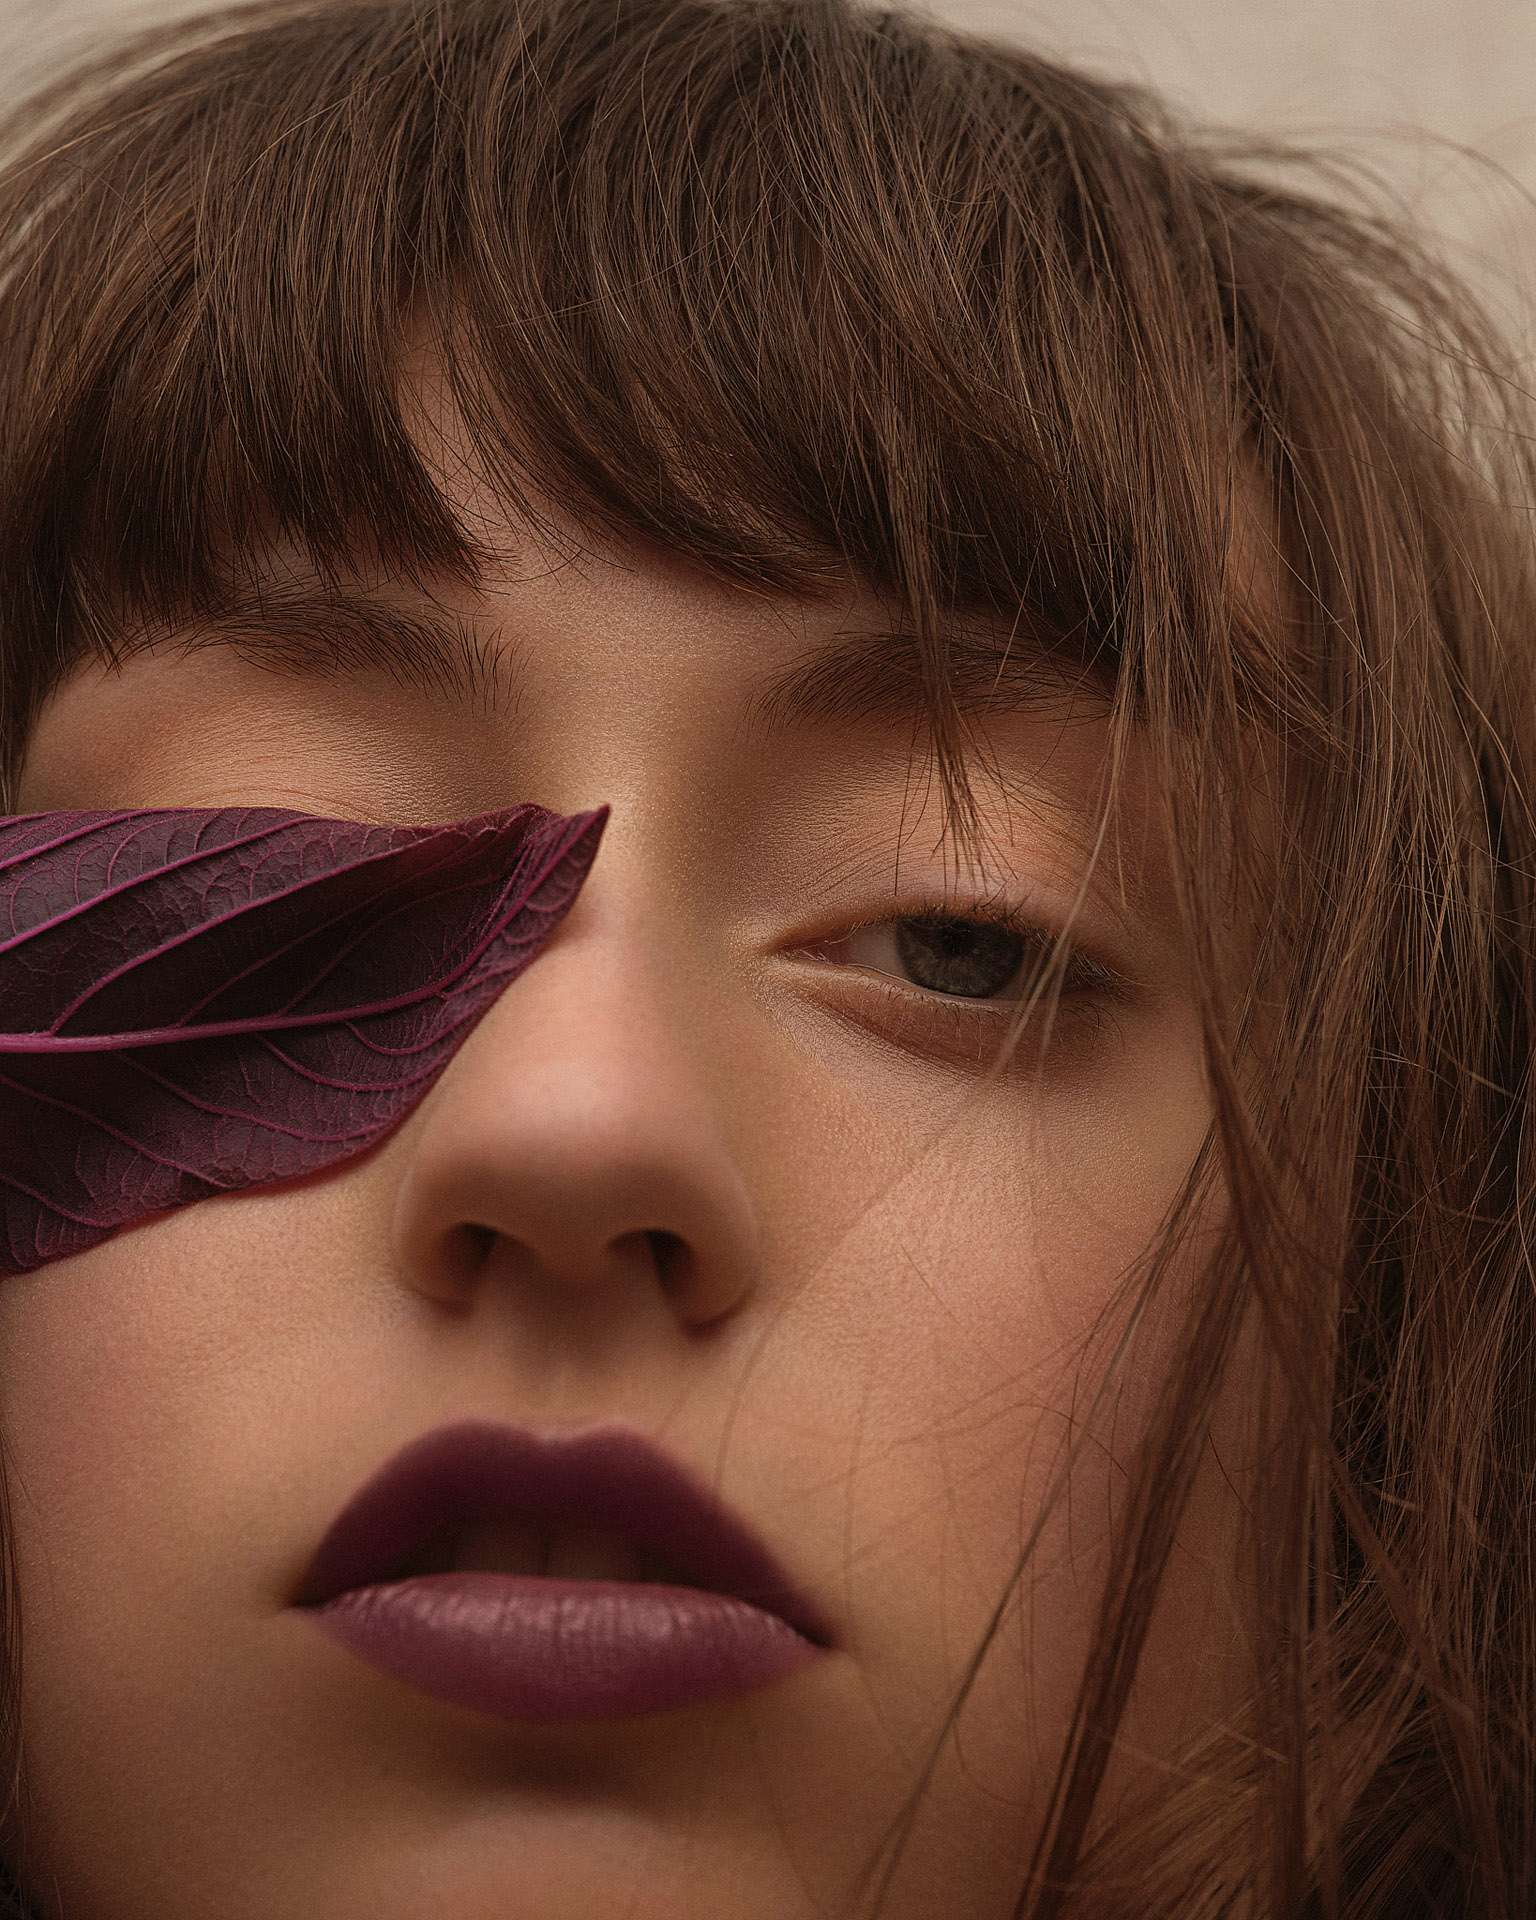 model Delphine with purple lipstick and purple leaf over her eye by Maxyme G Delisle for Flanelle Magazine